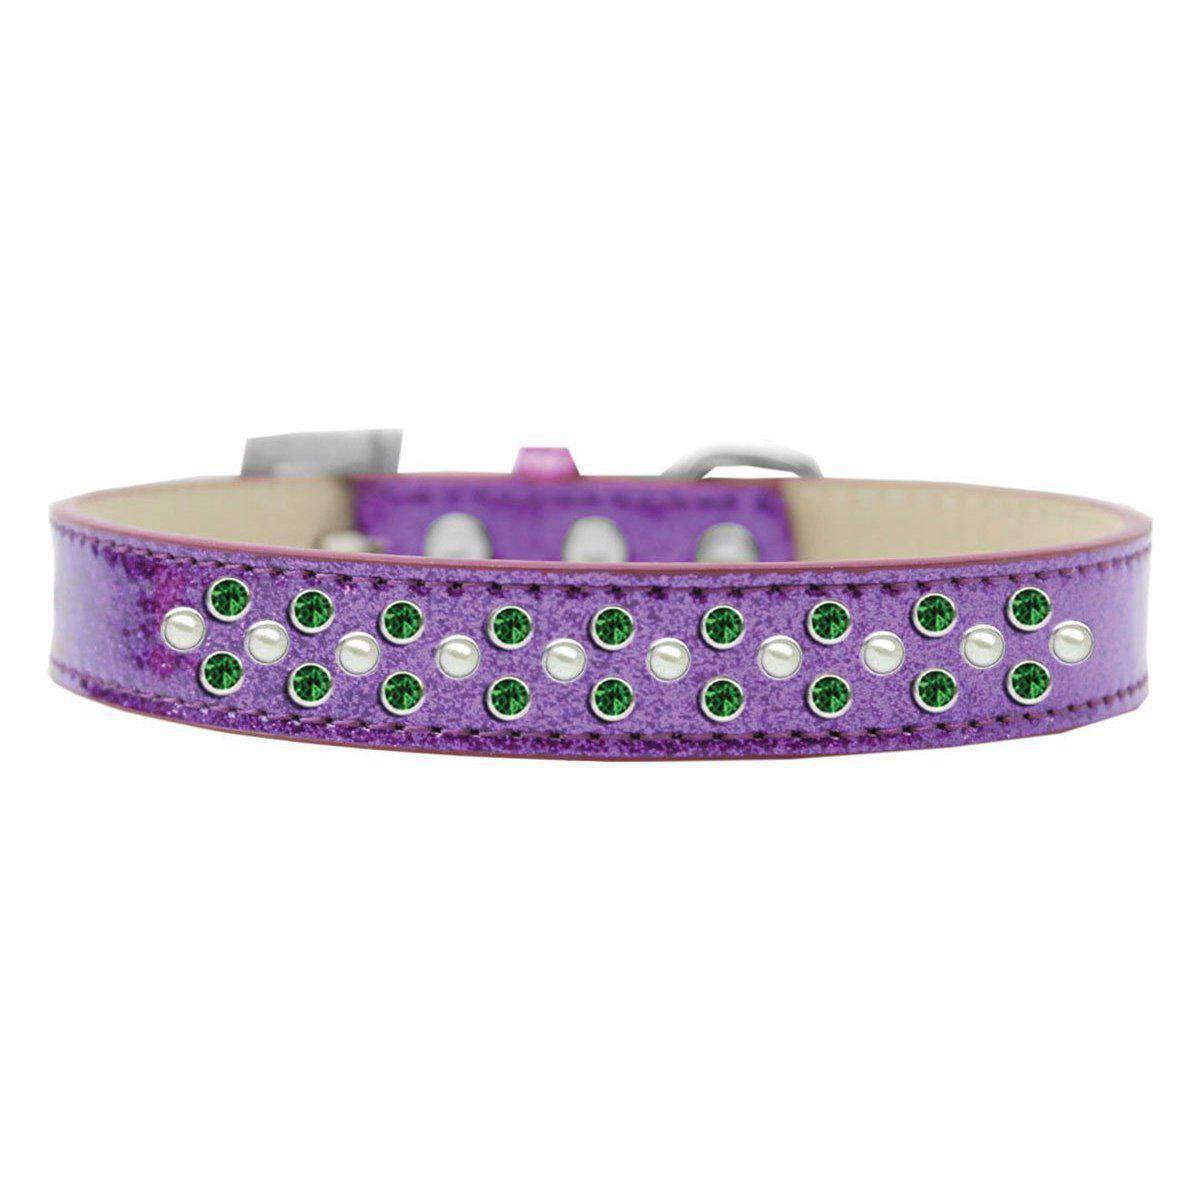 Mirage Pet Products Sprinkles Ice Cream Dog Collar Pearl And Emerald Green Crystals Size 14 - Purple-Mirage Pet Products-DirtyFurClothing